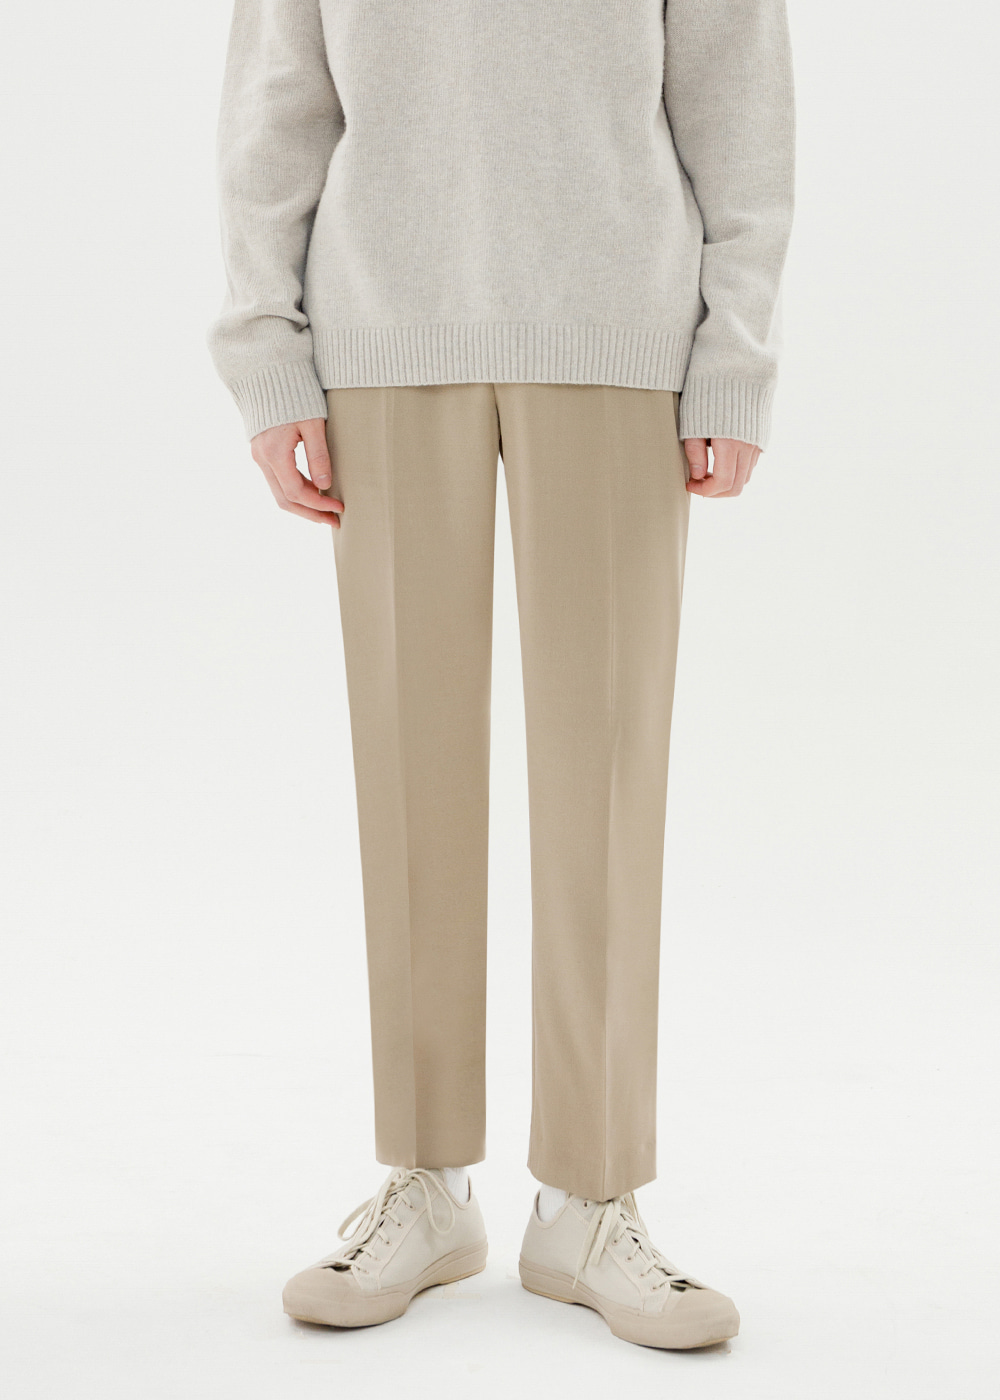 CROP TAPERED SLACKS [BEIGE]